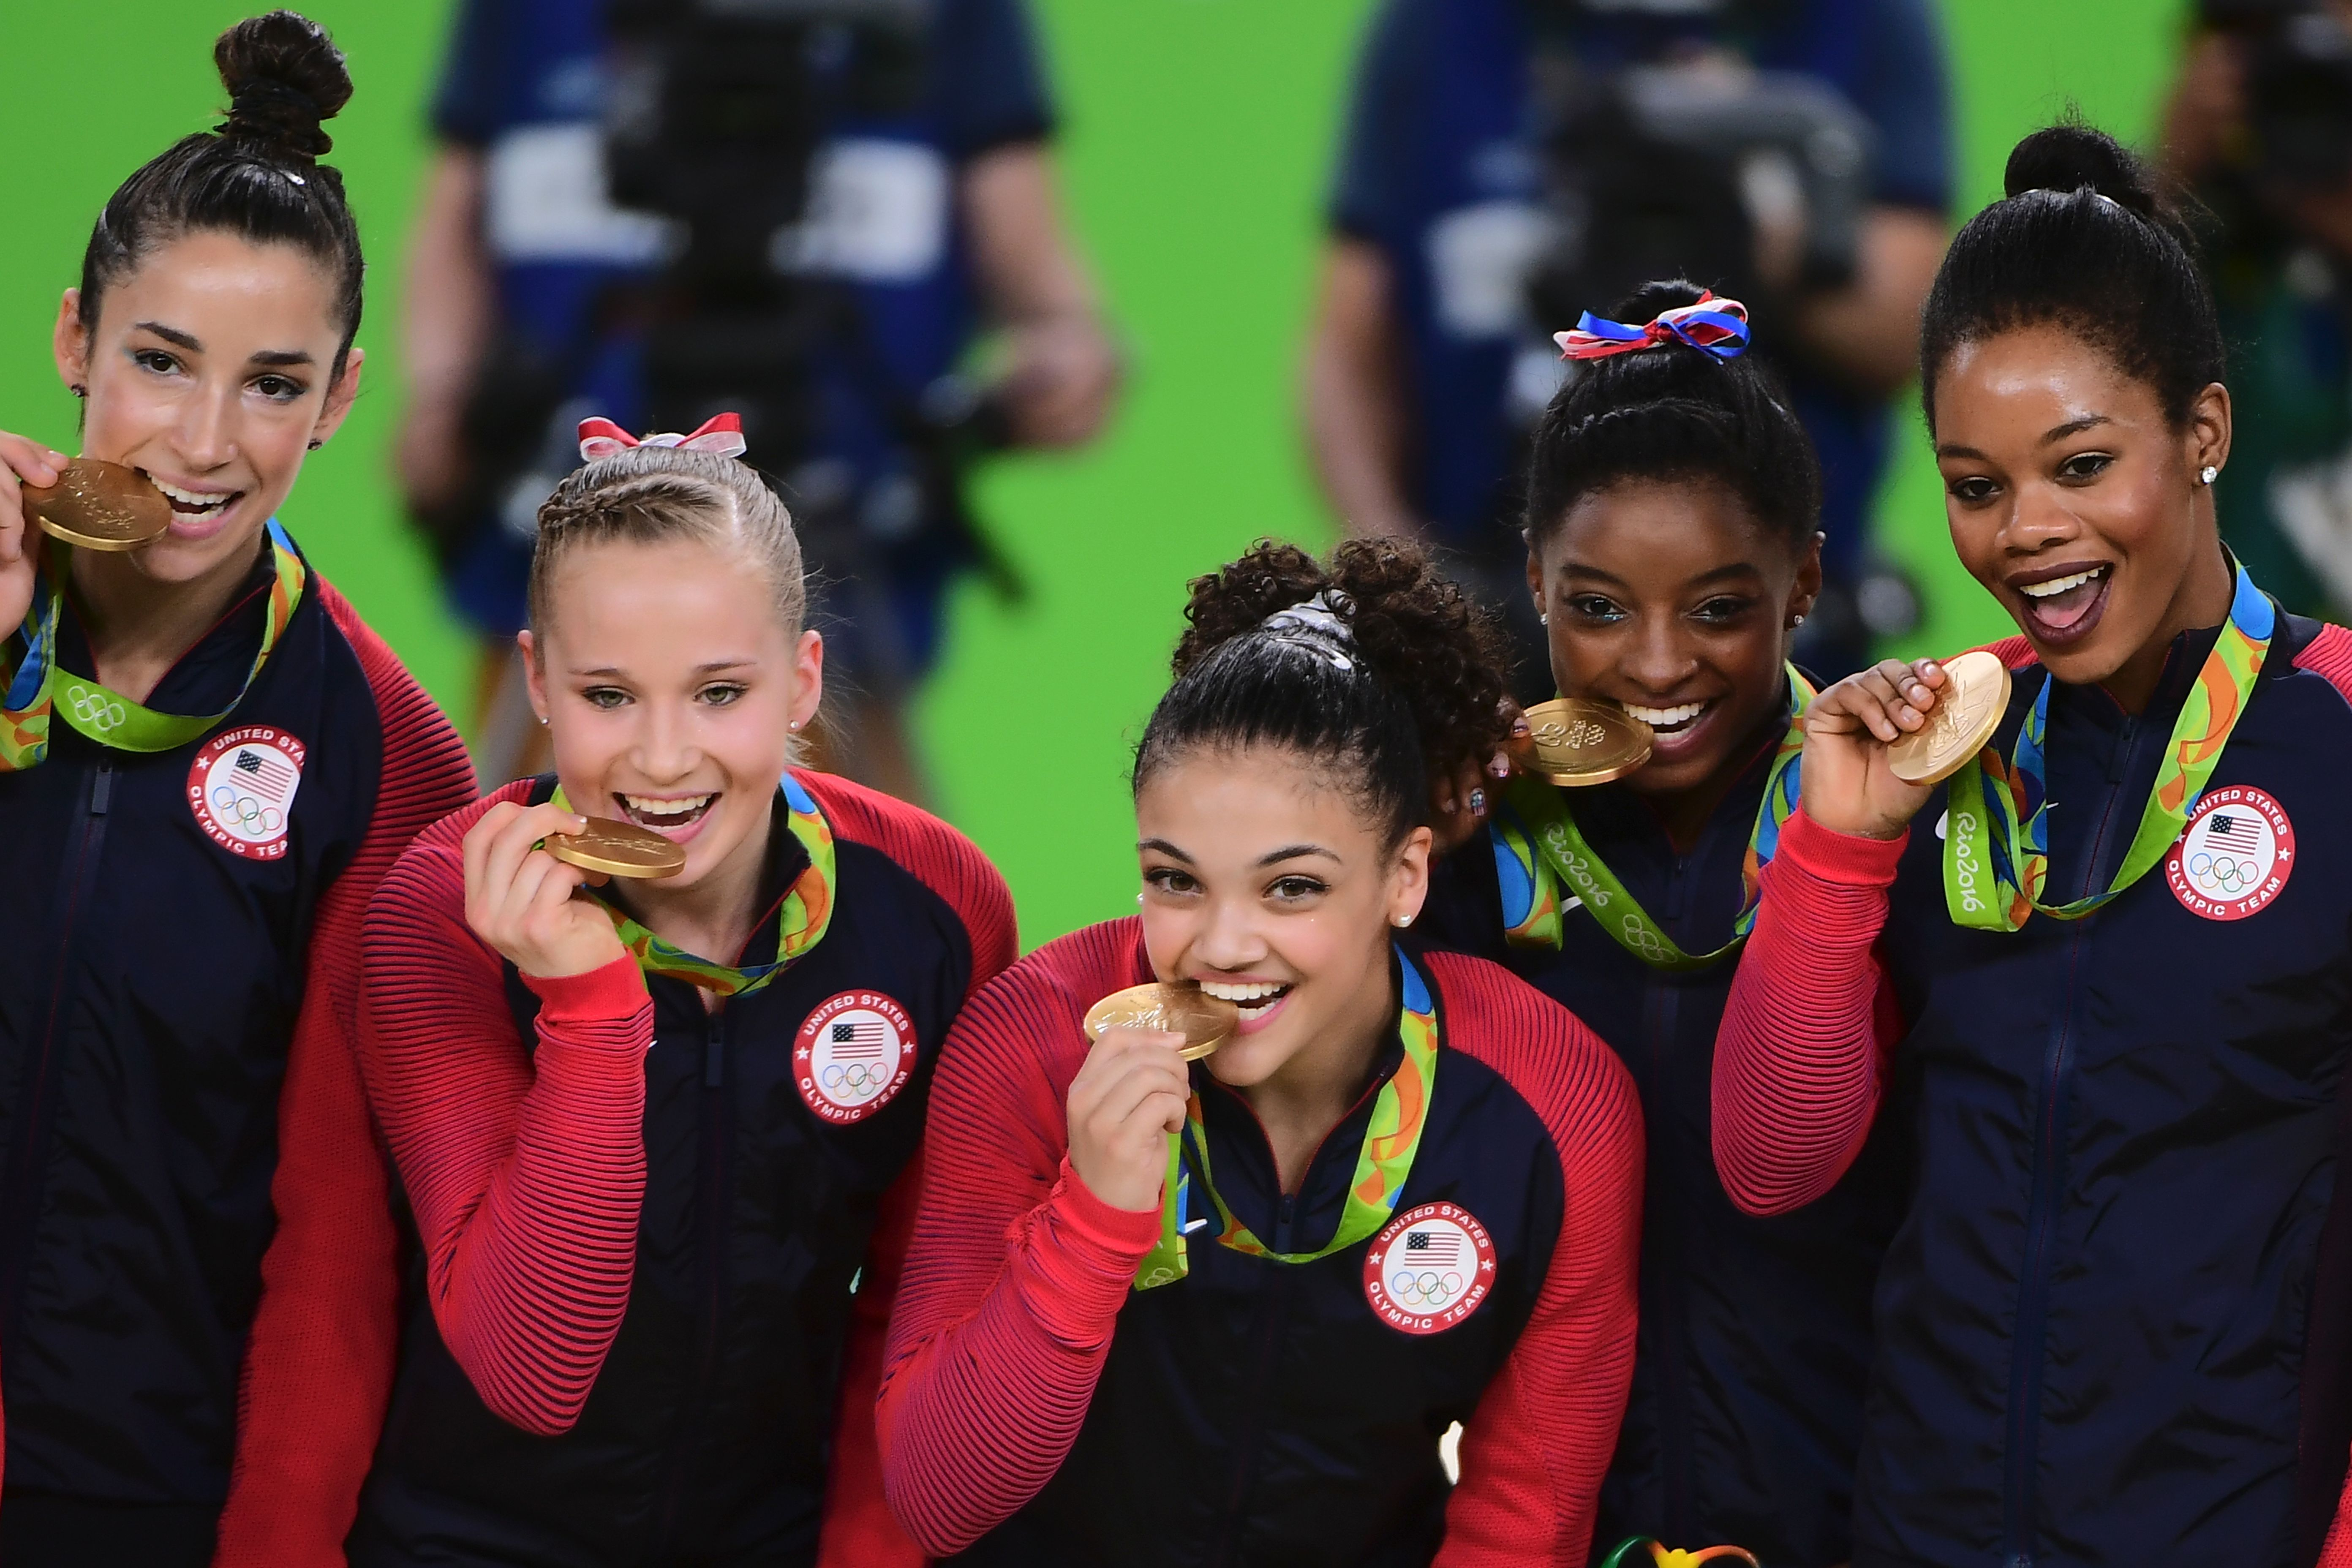 US gymnasts Alexandra Raisman, Madison Kocian, Lauren Hernandez, Simone Biles and Gabrielle Douglas celebrate with their gold medals on the podium during the women's team final Artistic Gymnastics at the Olympic Arena during the Rio 2016 Olympic Games in Rio de Janeiro on August 9, 2016. Photo Credit: EMMANUEL DUNAND/AFP/Getty Images.